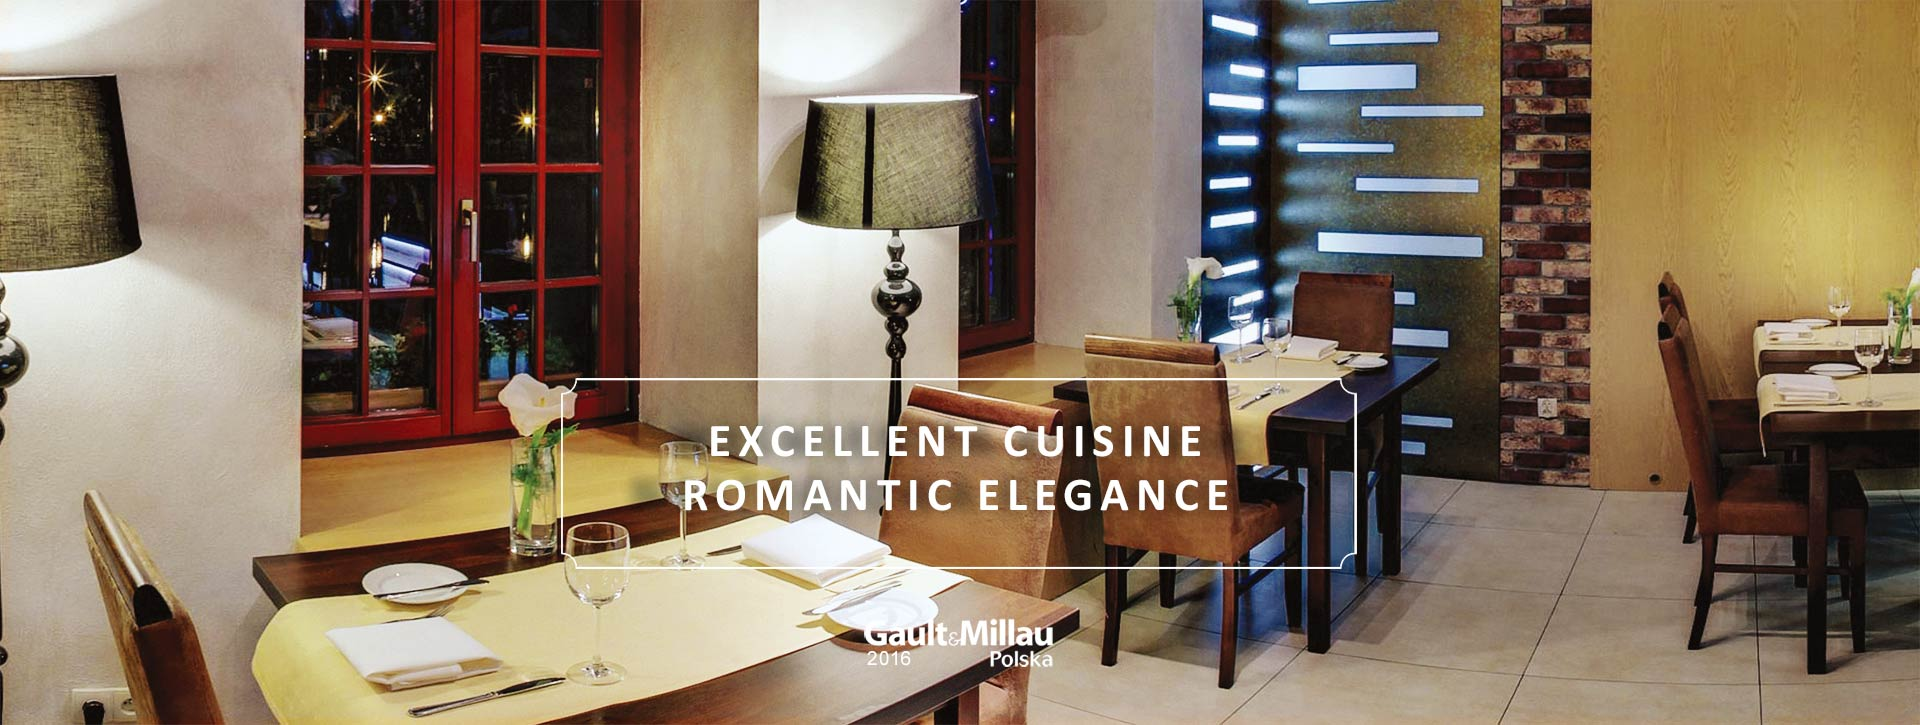 excellent-cuisine-romantic-elegance-3